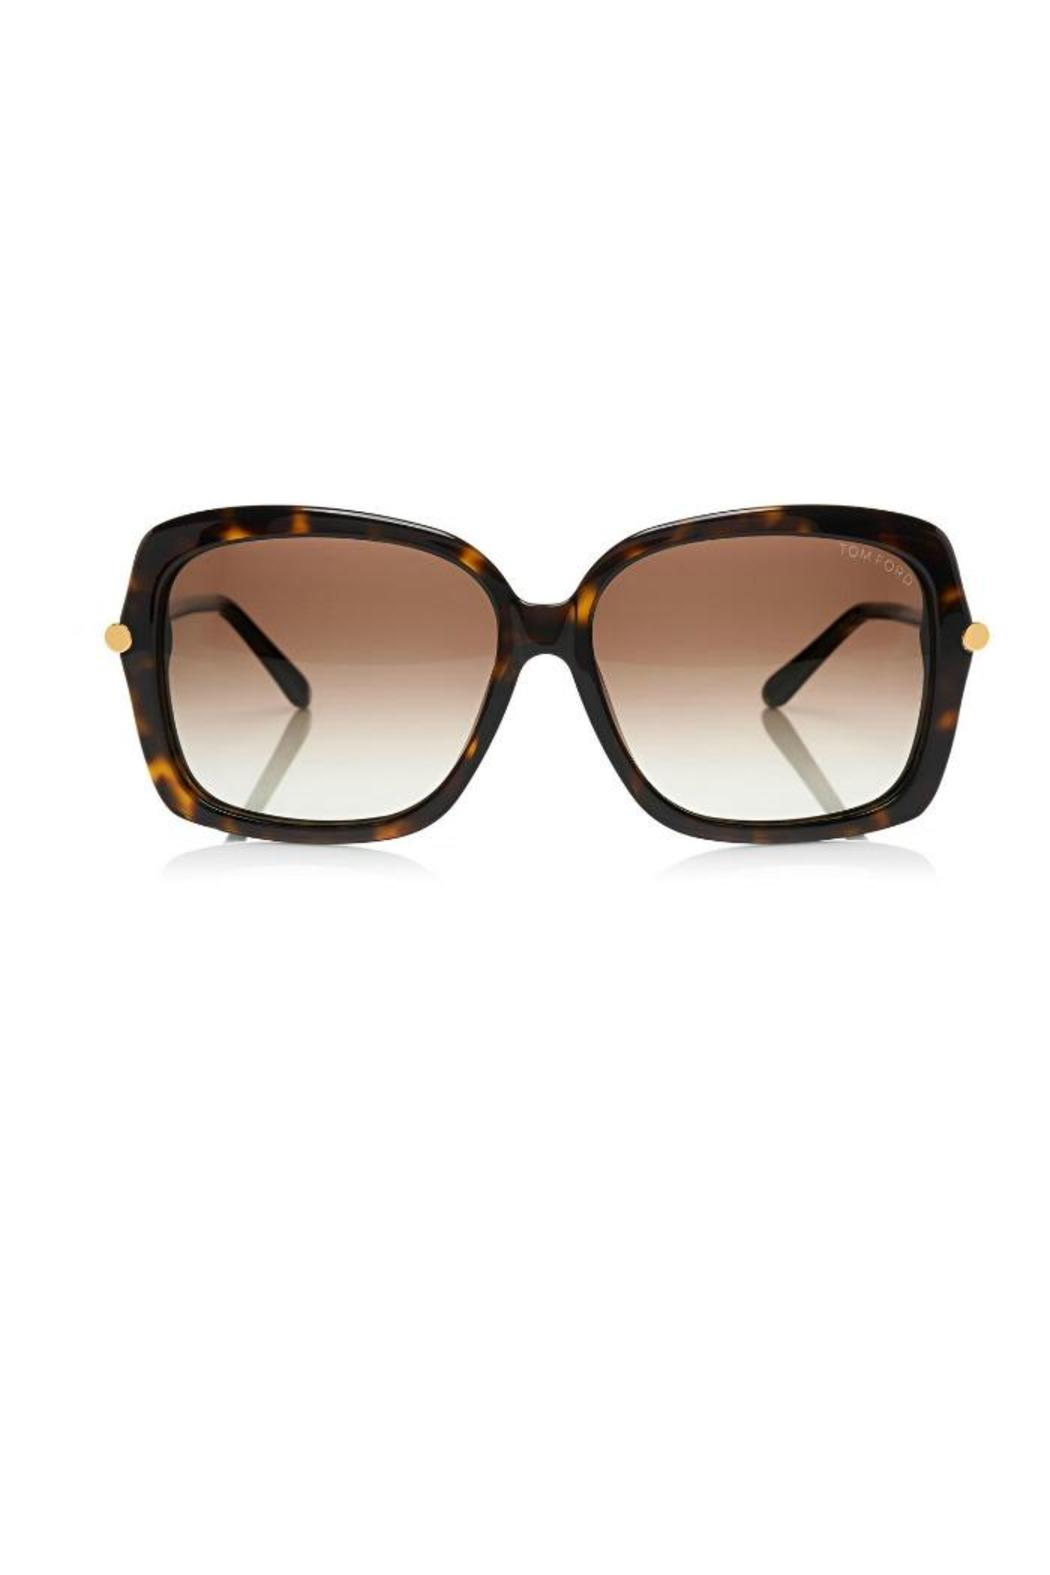 49ec0af425afb Tom Ford Paloma Square Sunglasses from Ohio by Peek of Chic — Shoptiques